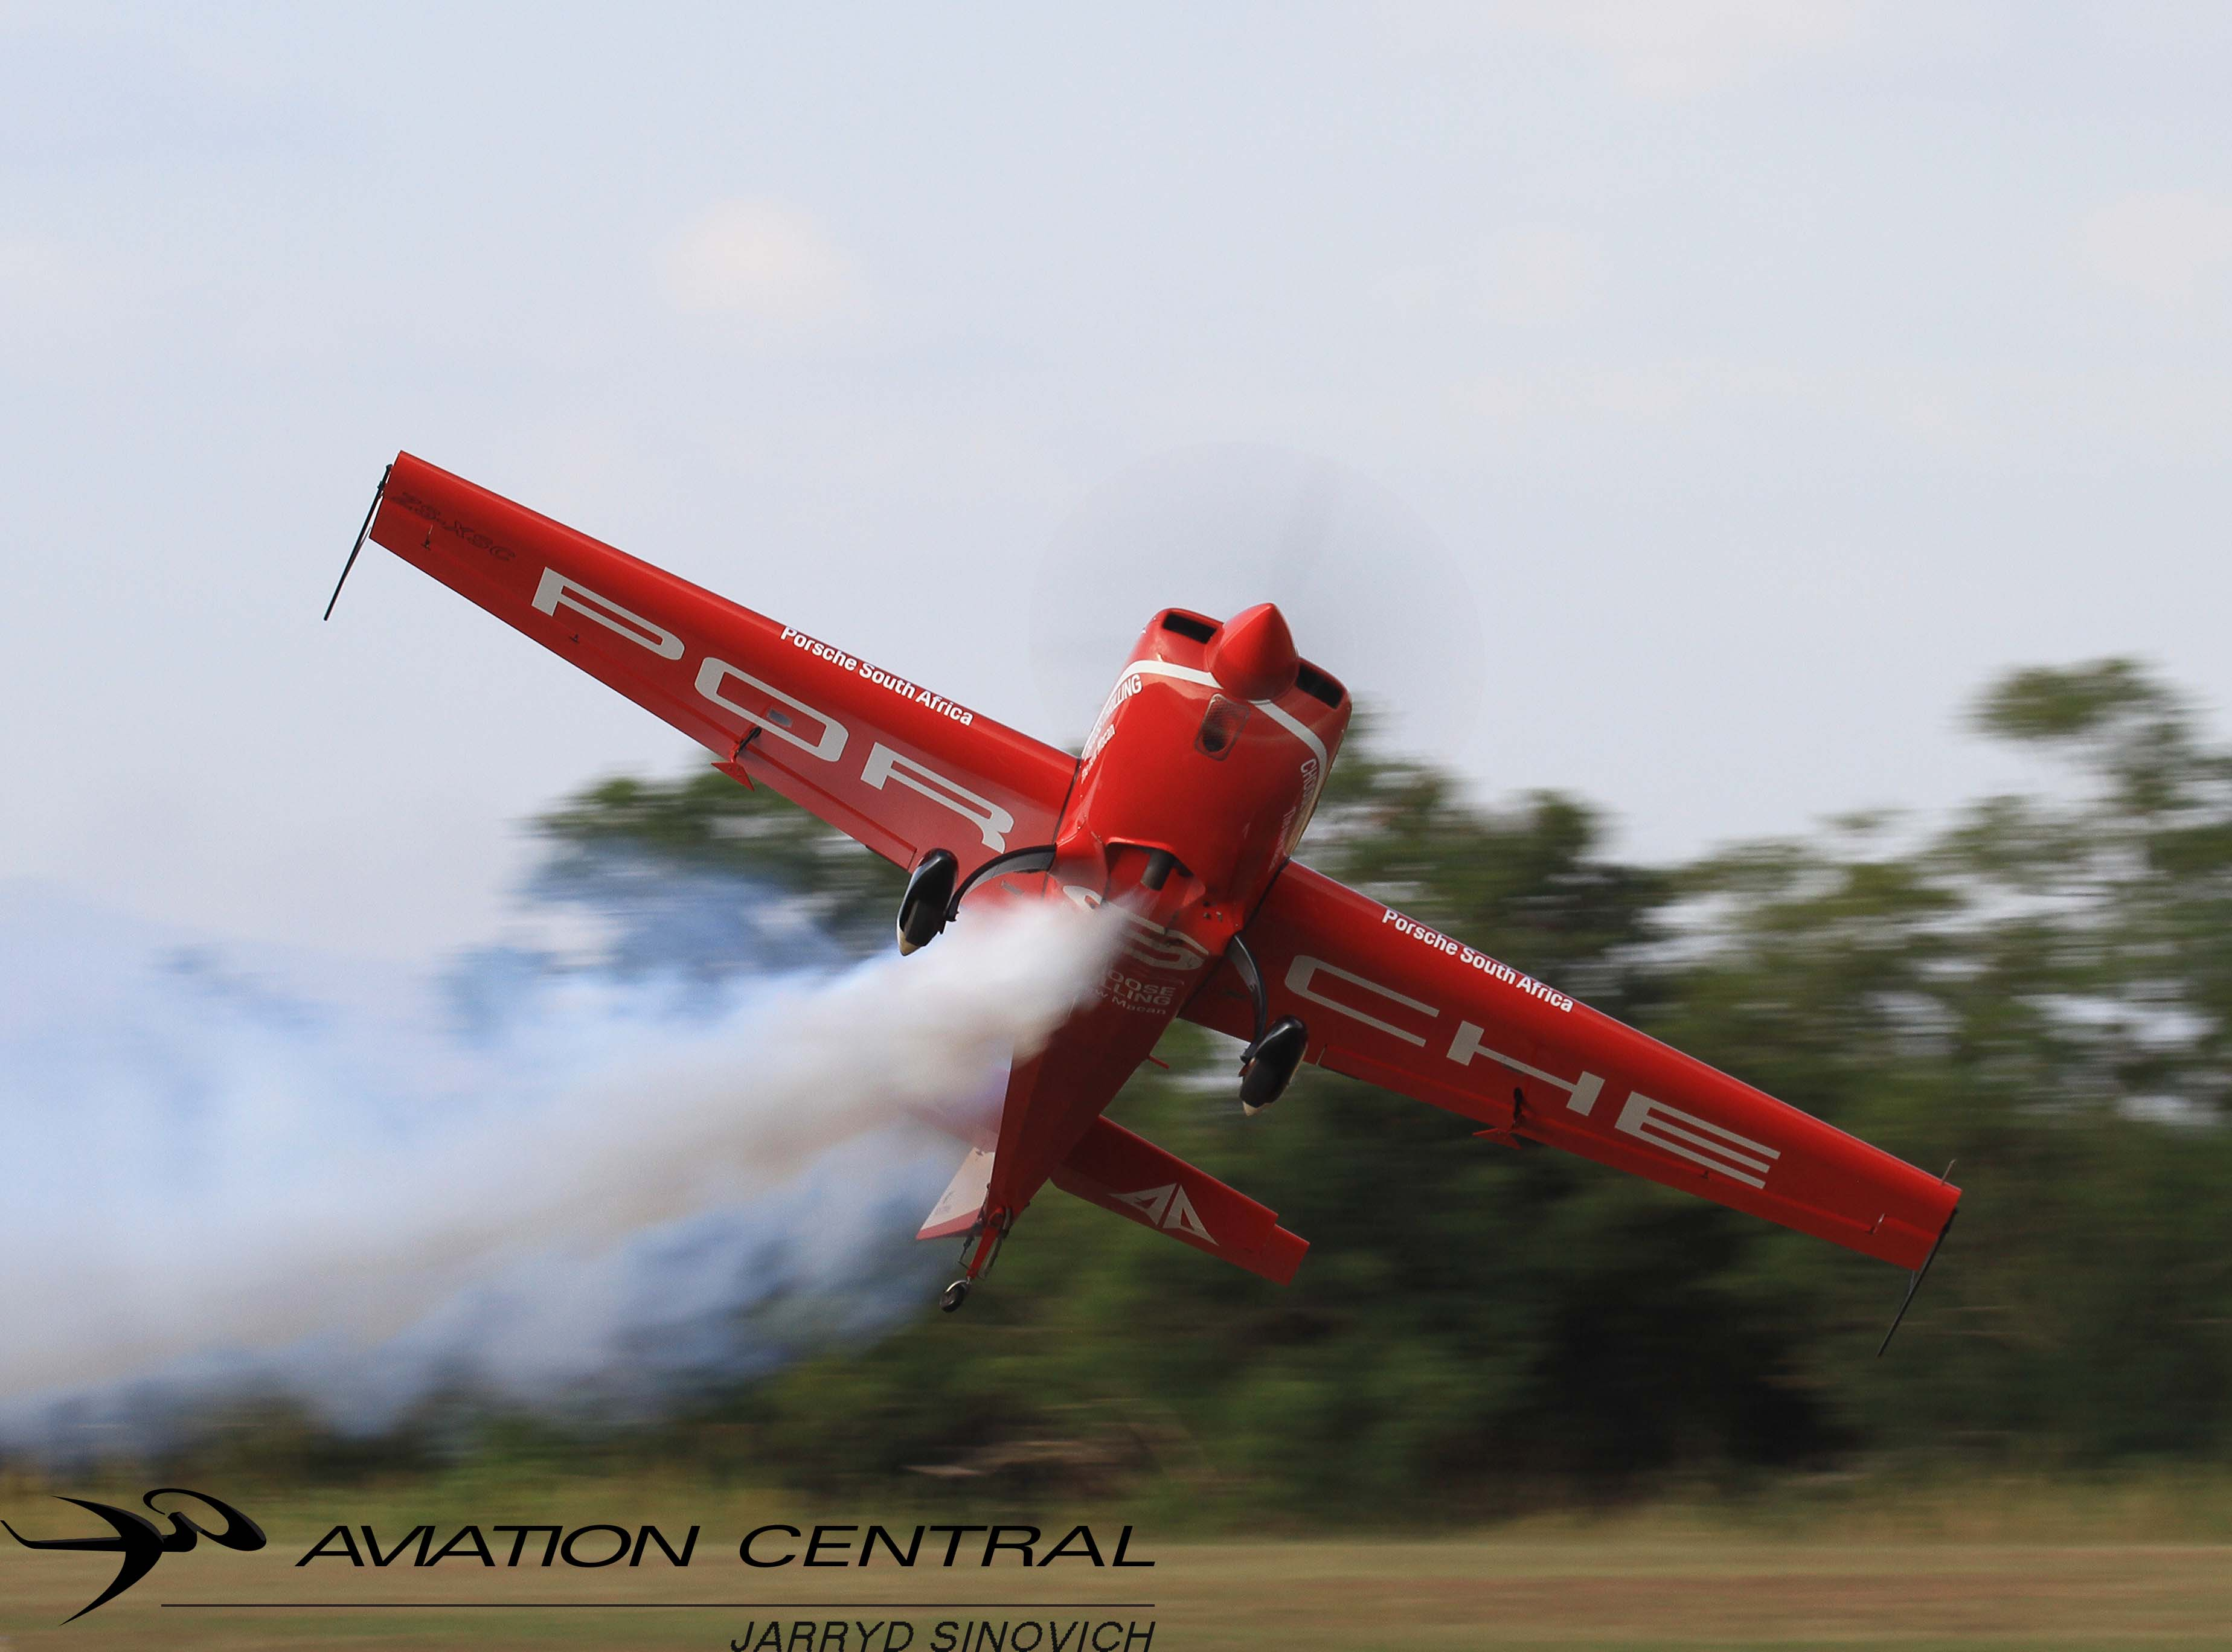 ABSA Lowveld Airshow 2019 - Aviation Central